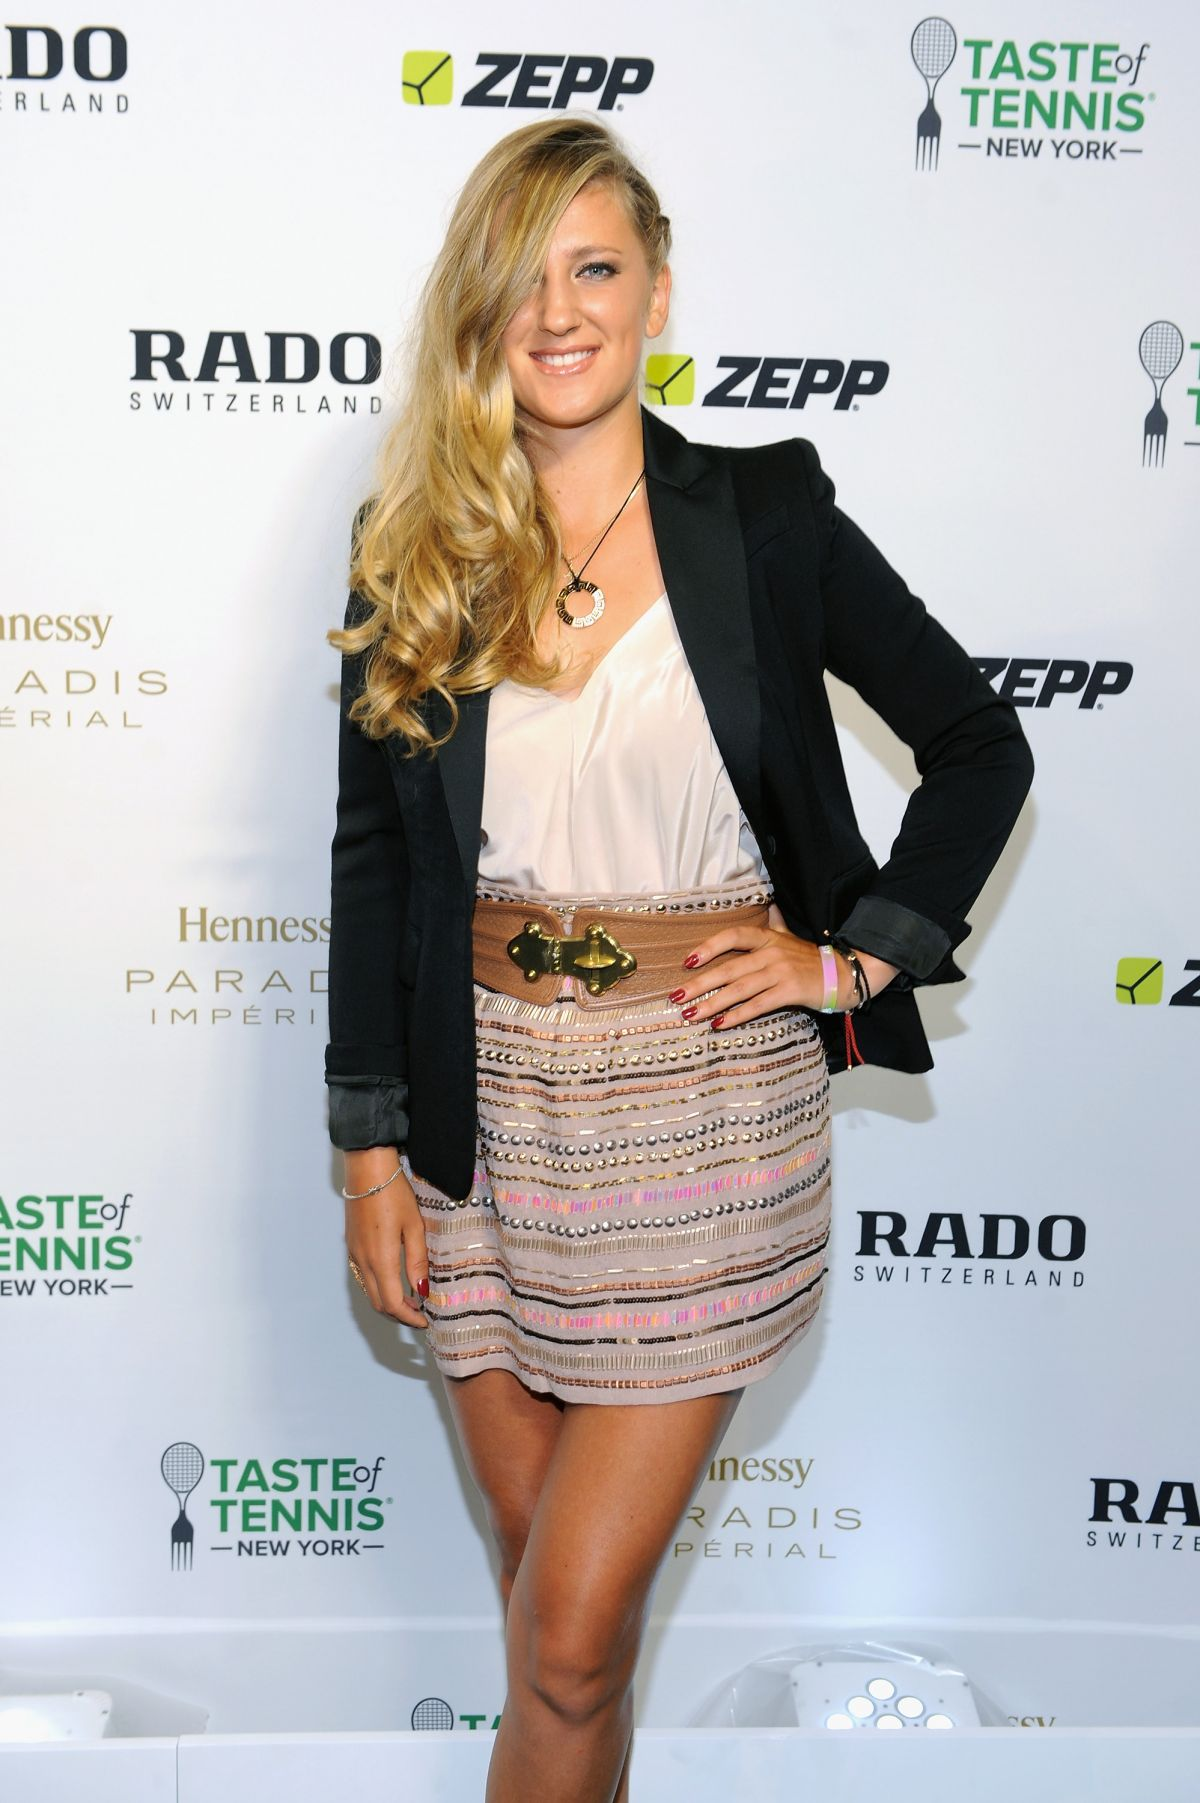 VICTORIA AZARENKA at Taste of Tennis Gala in New York